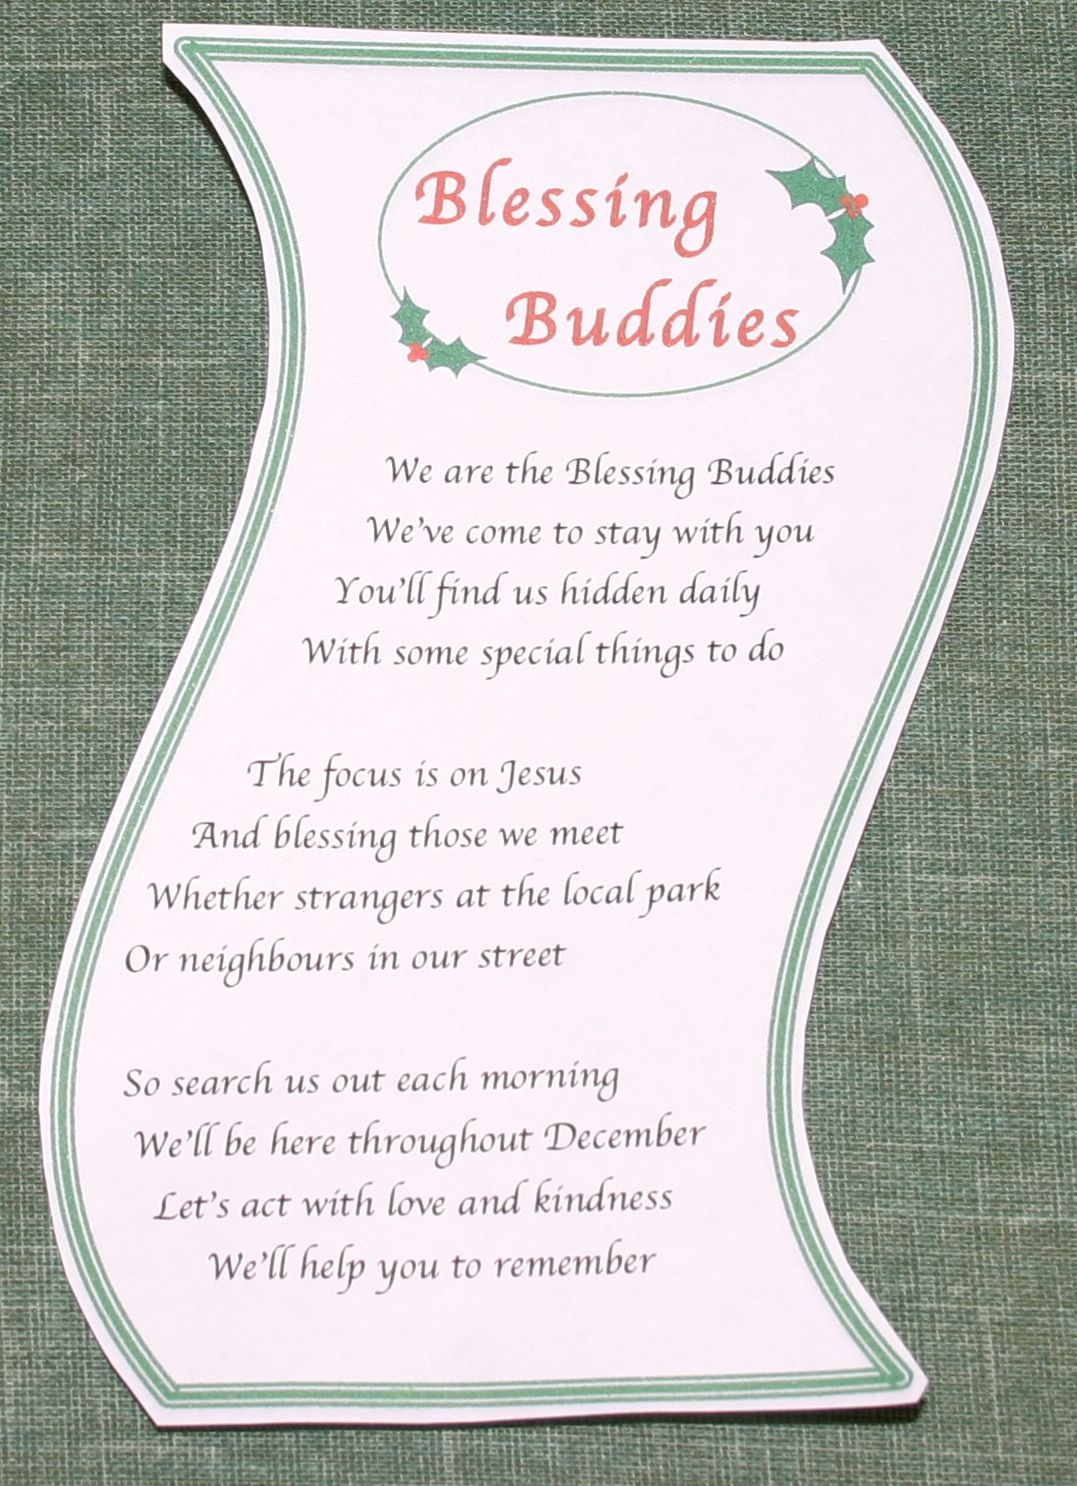 Free printable Blessing Buddies introduction poem here.)